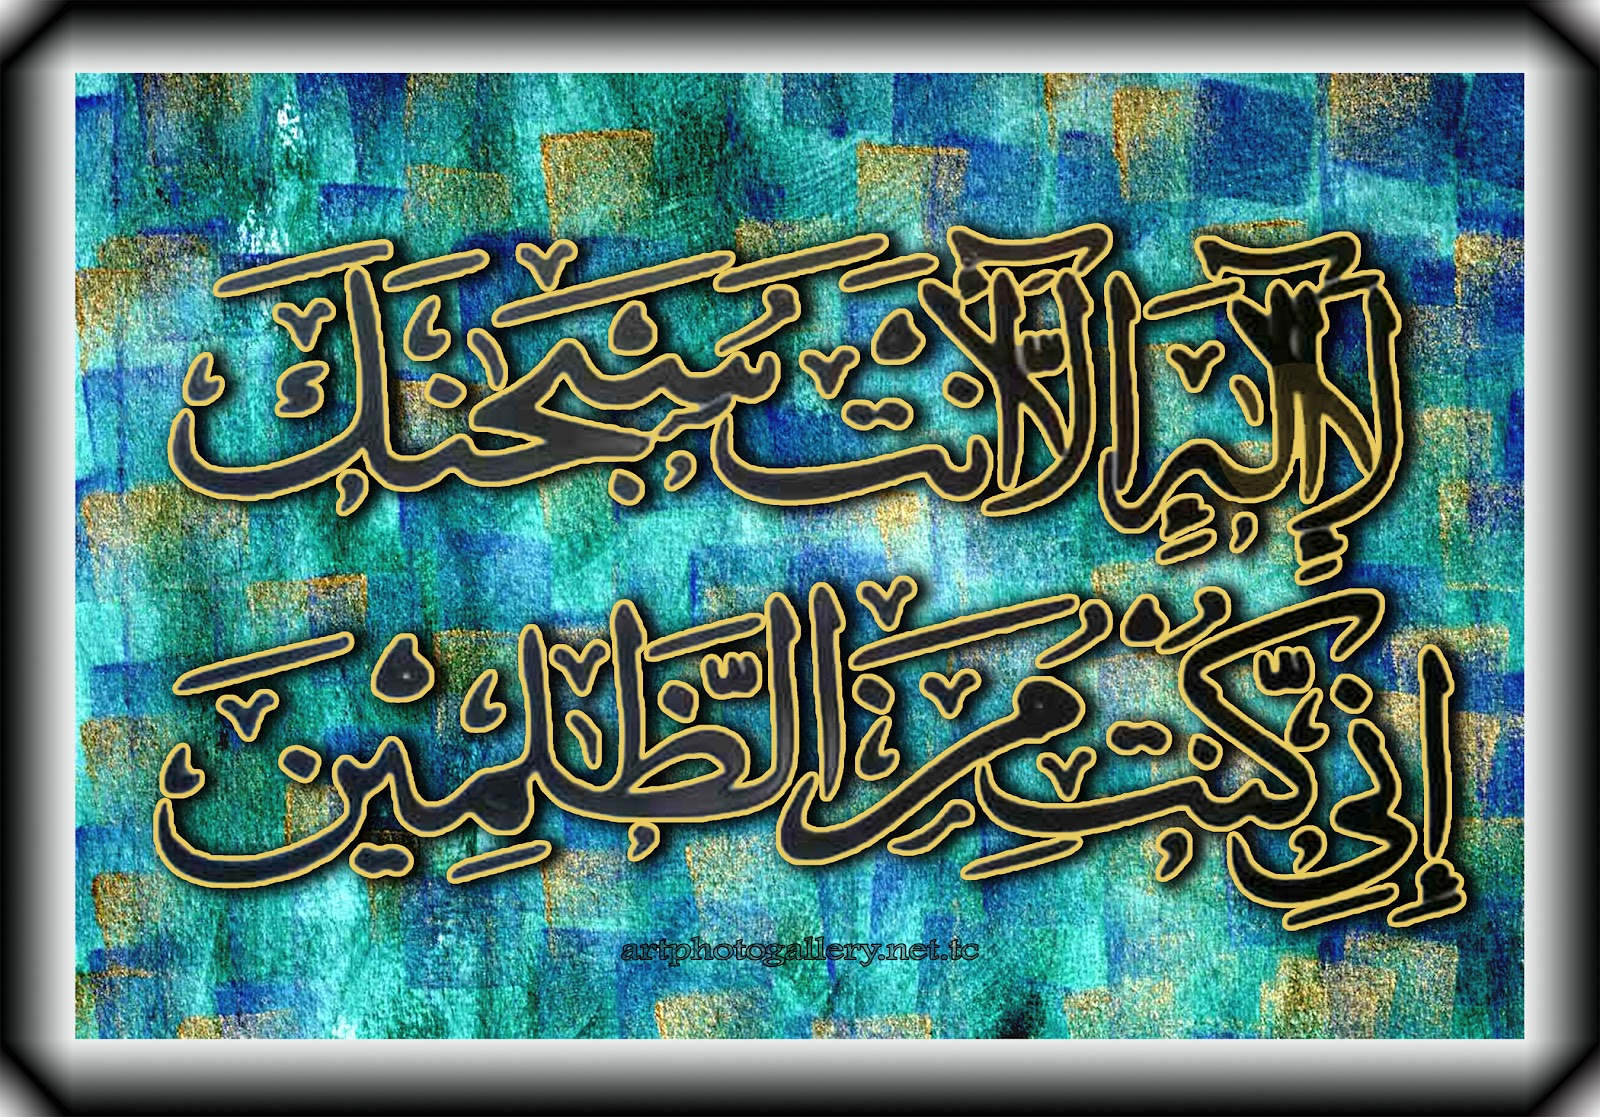 Object moved Calligraphy ayat